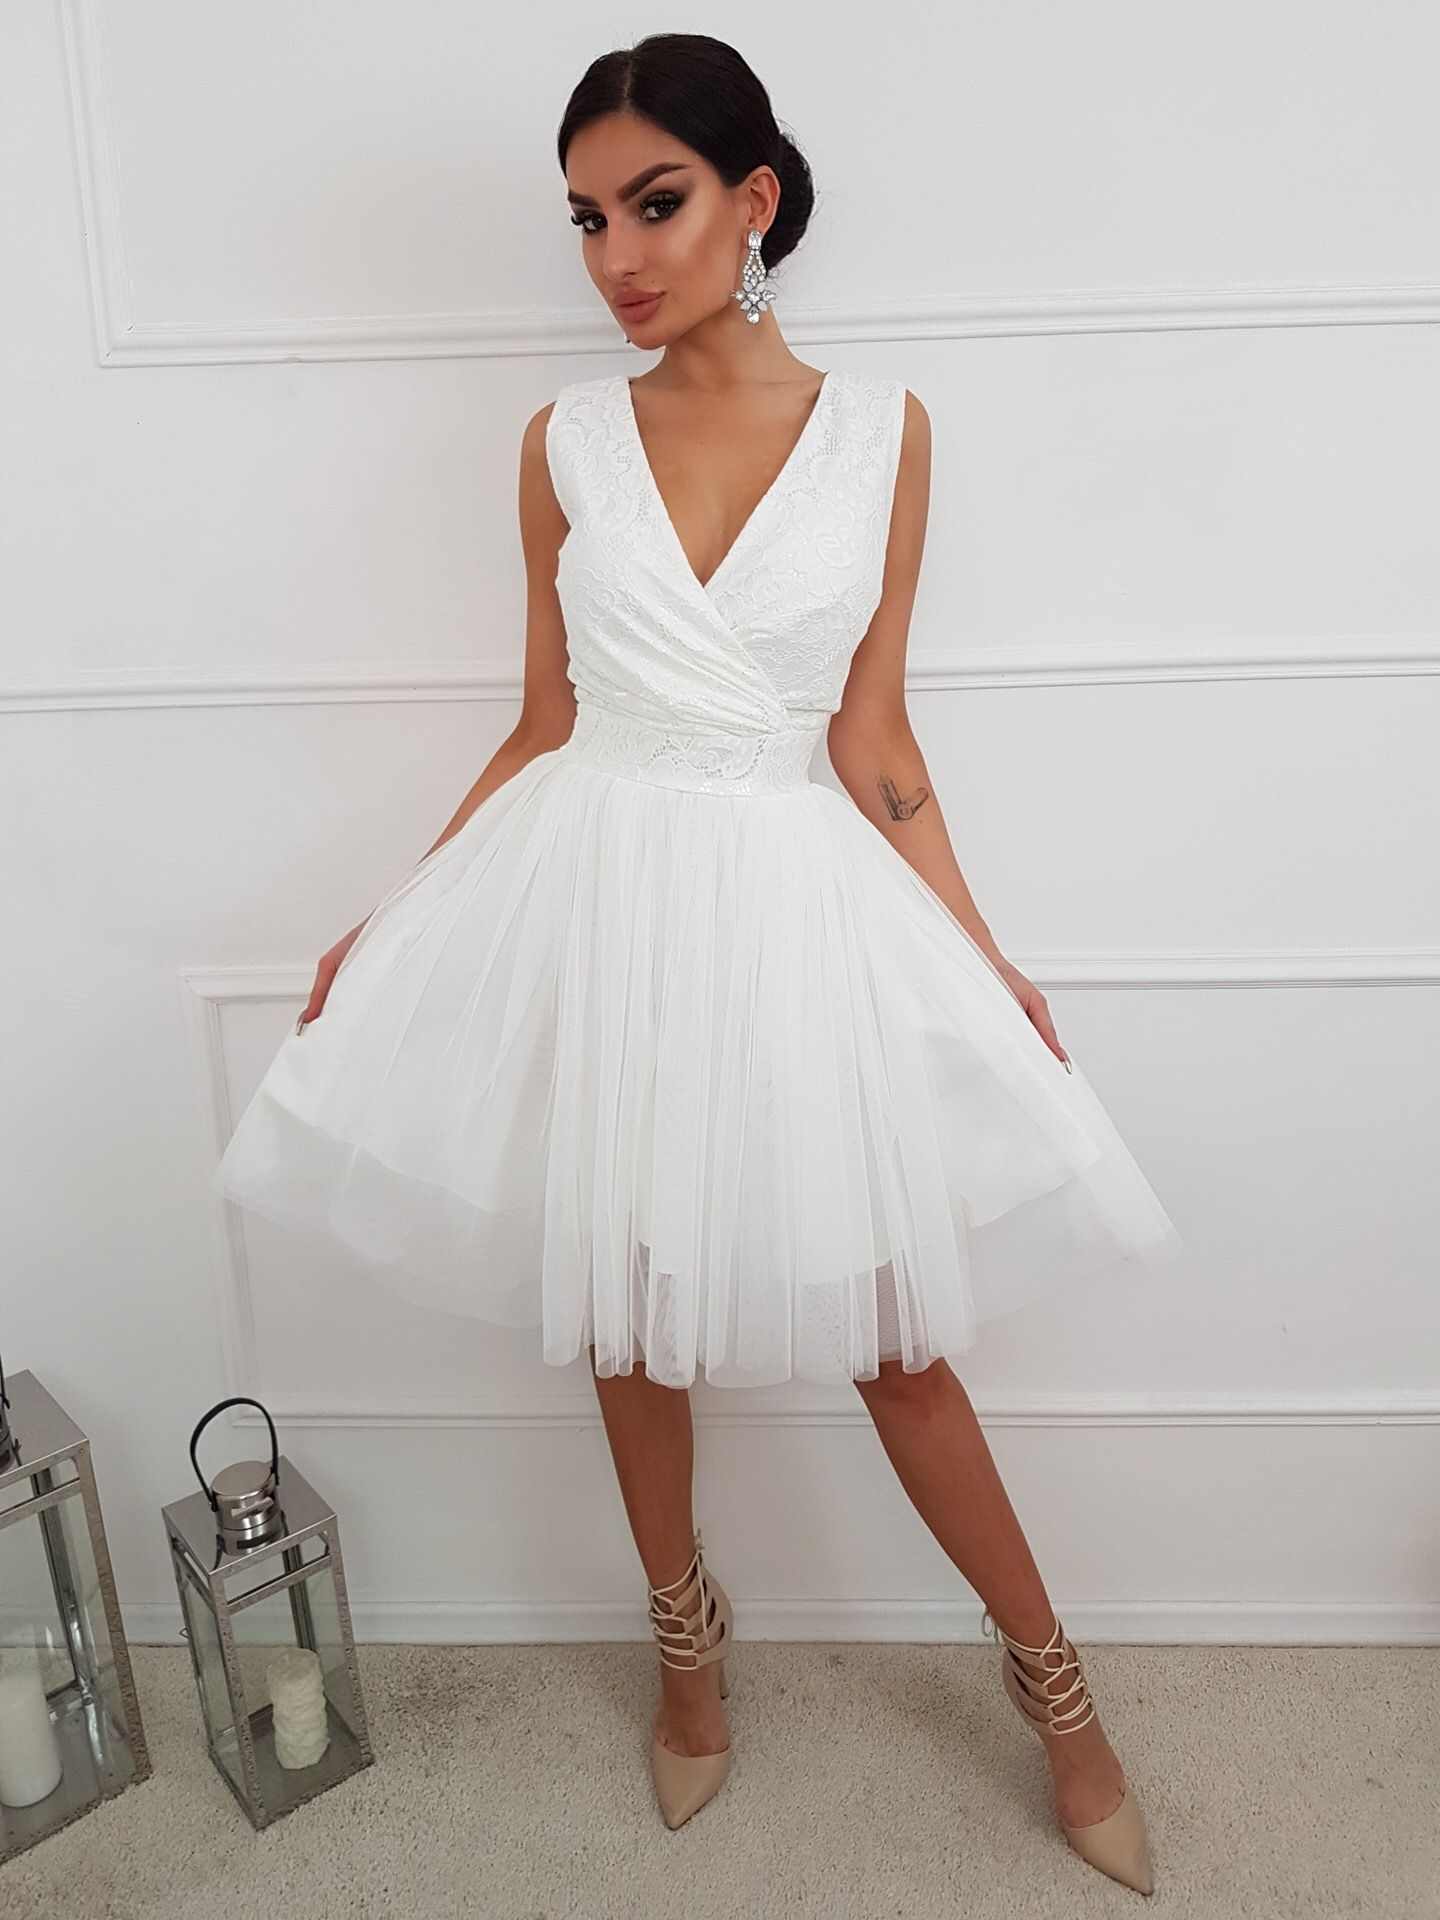 Tiulowa Sukienka Slubna Tulle Dress Fashion Bridal Collection White Formal Dress